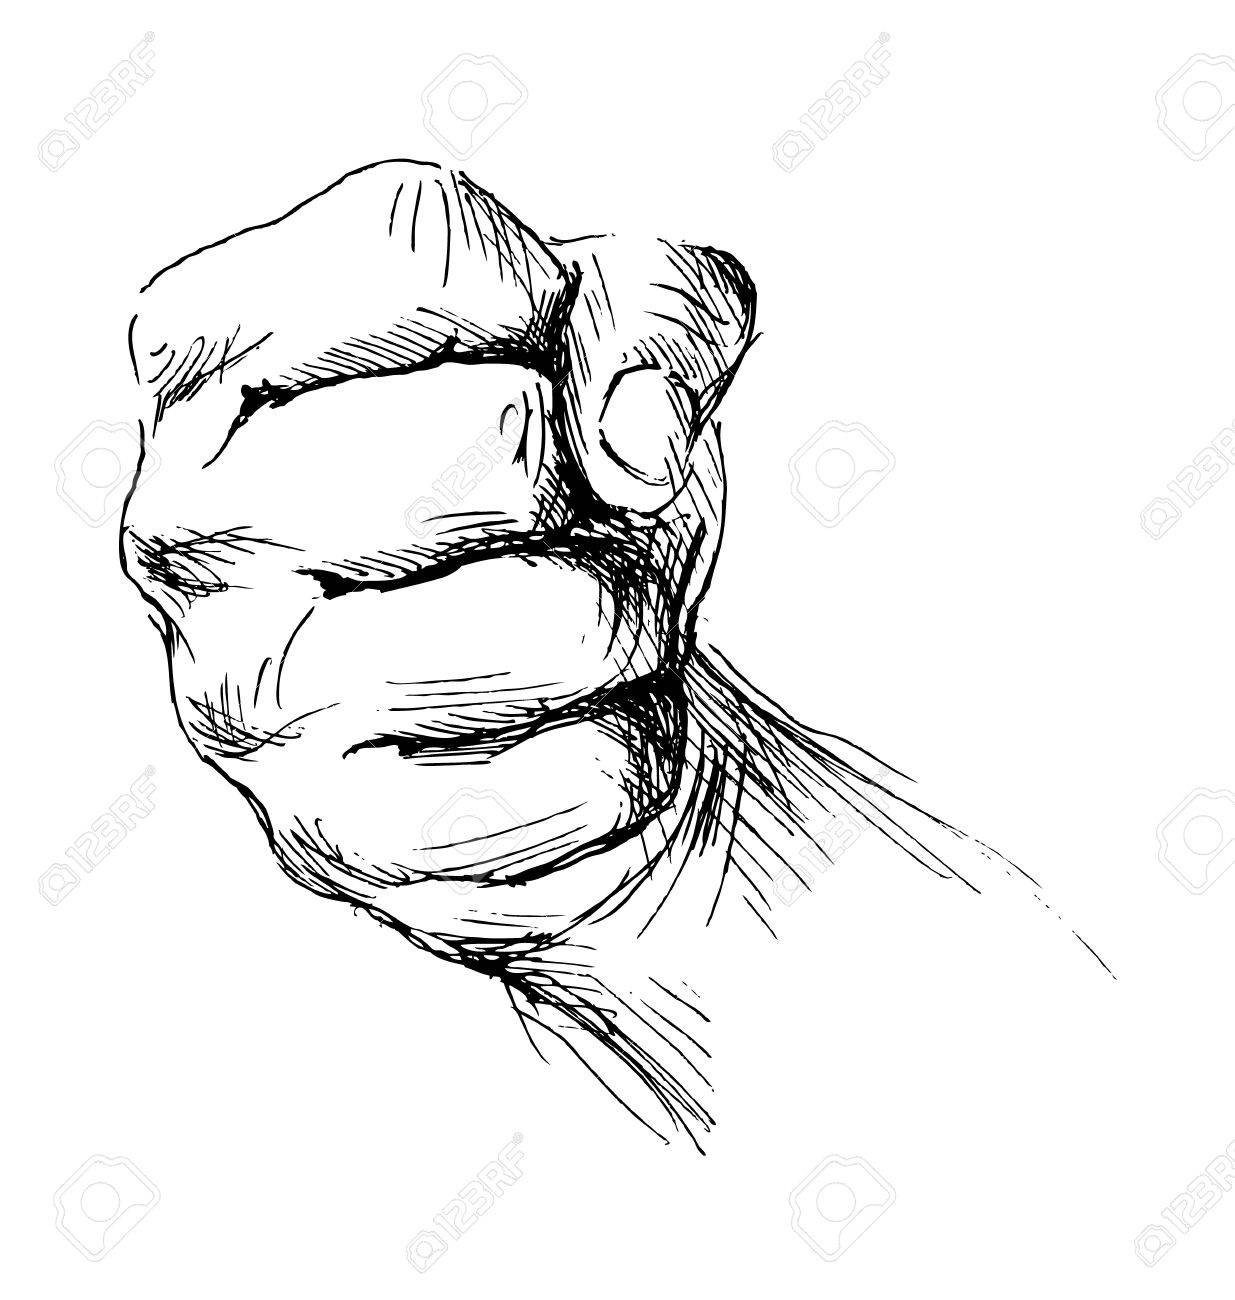 1235x1300 Hand Sketch Clenched Hand Royalty Free Cliparts, Vectors,